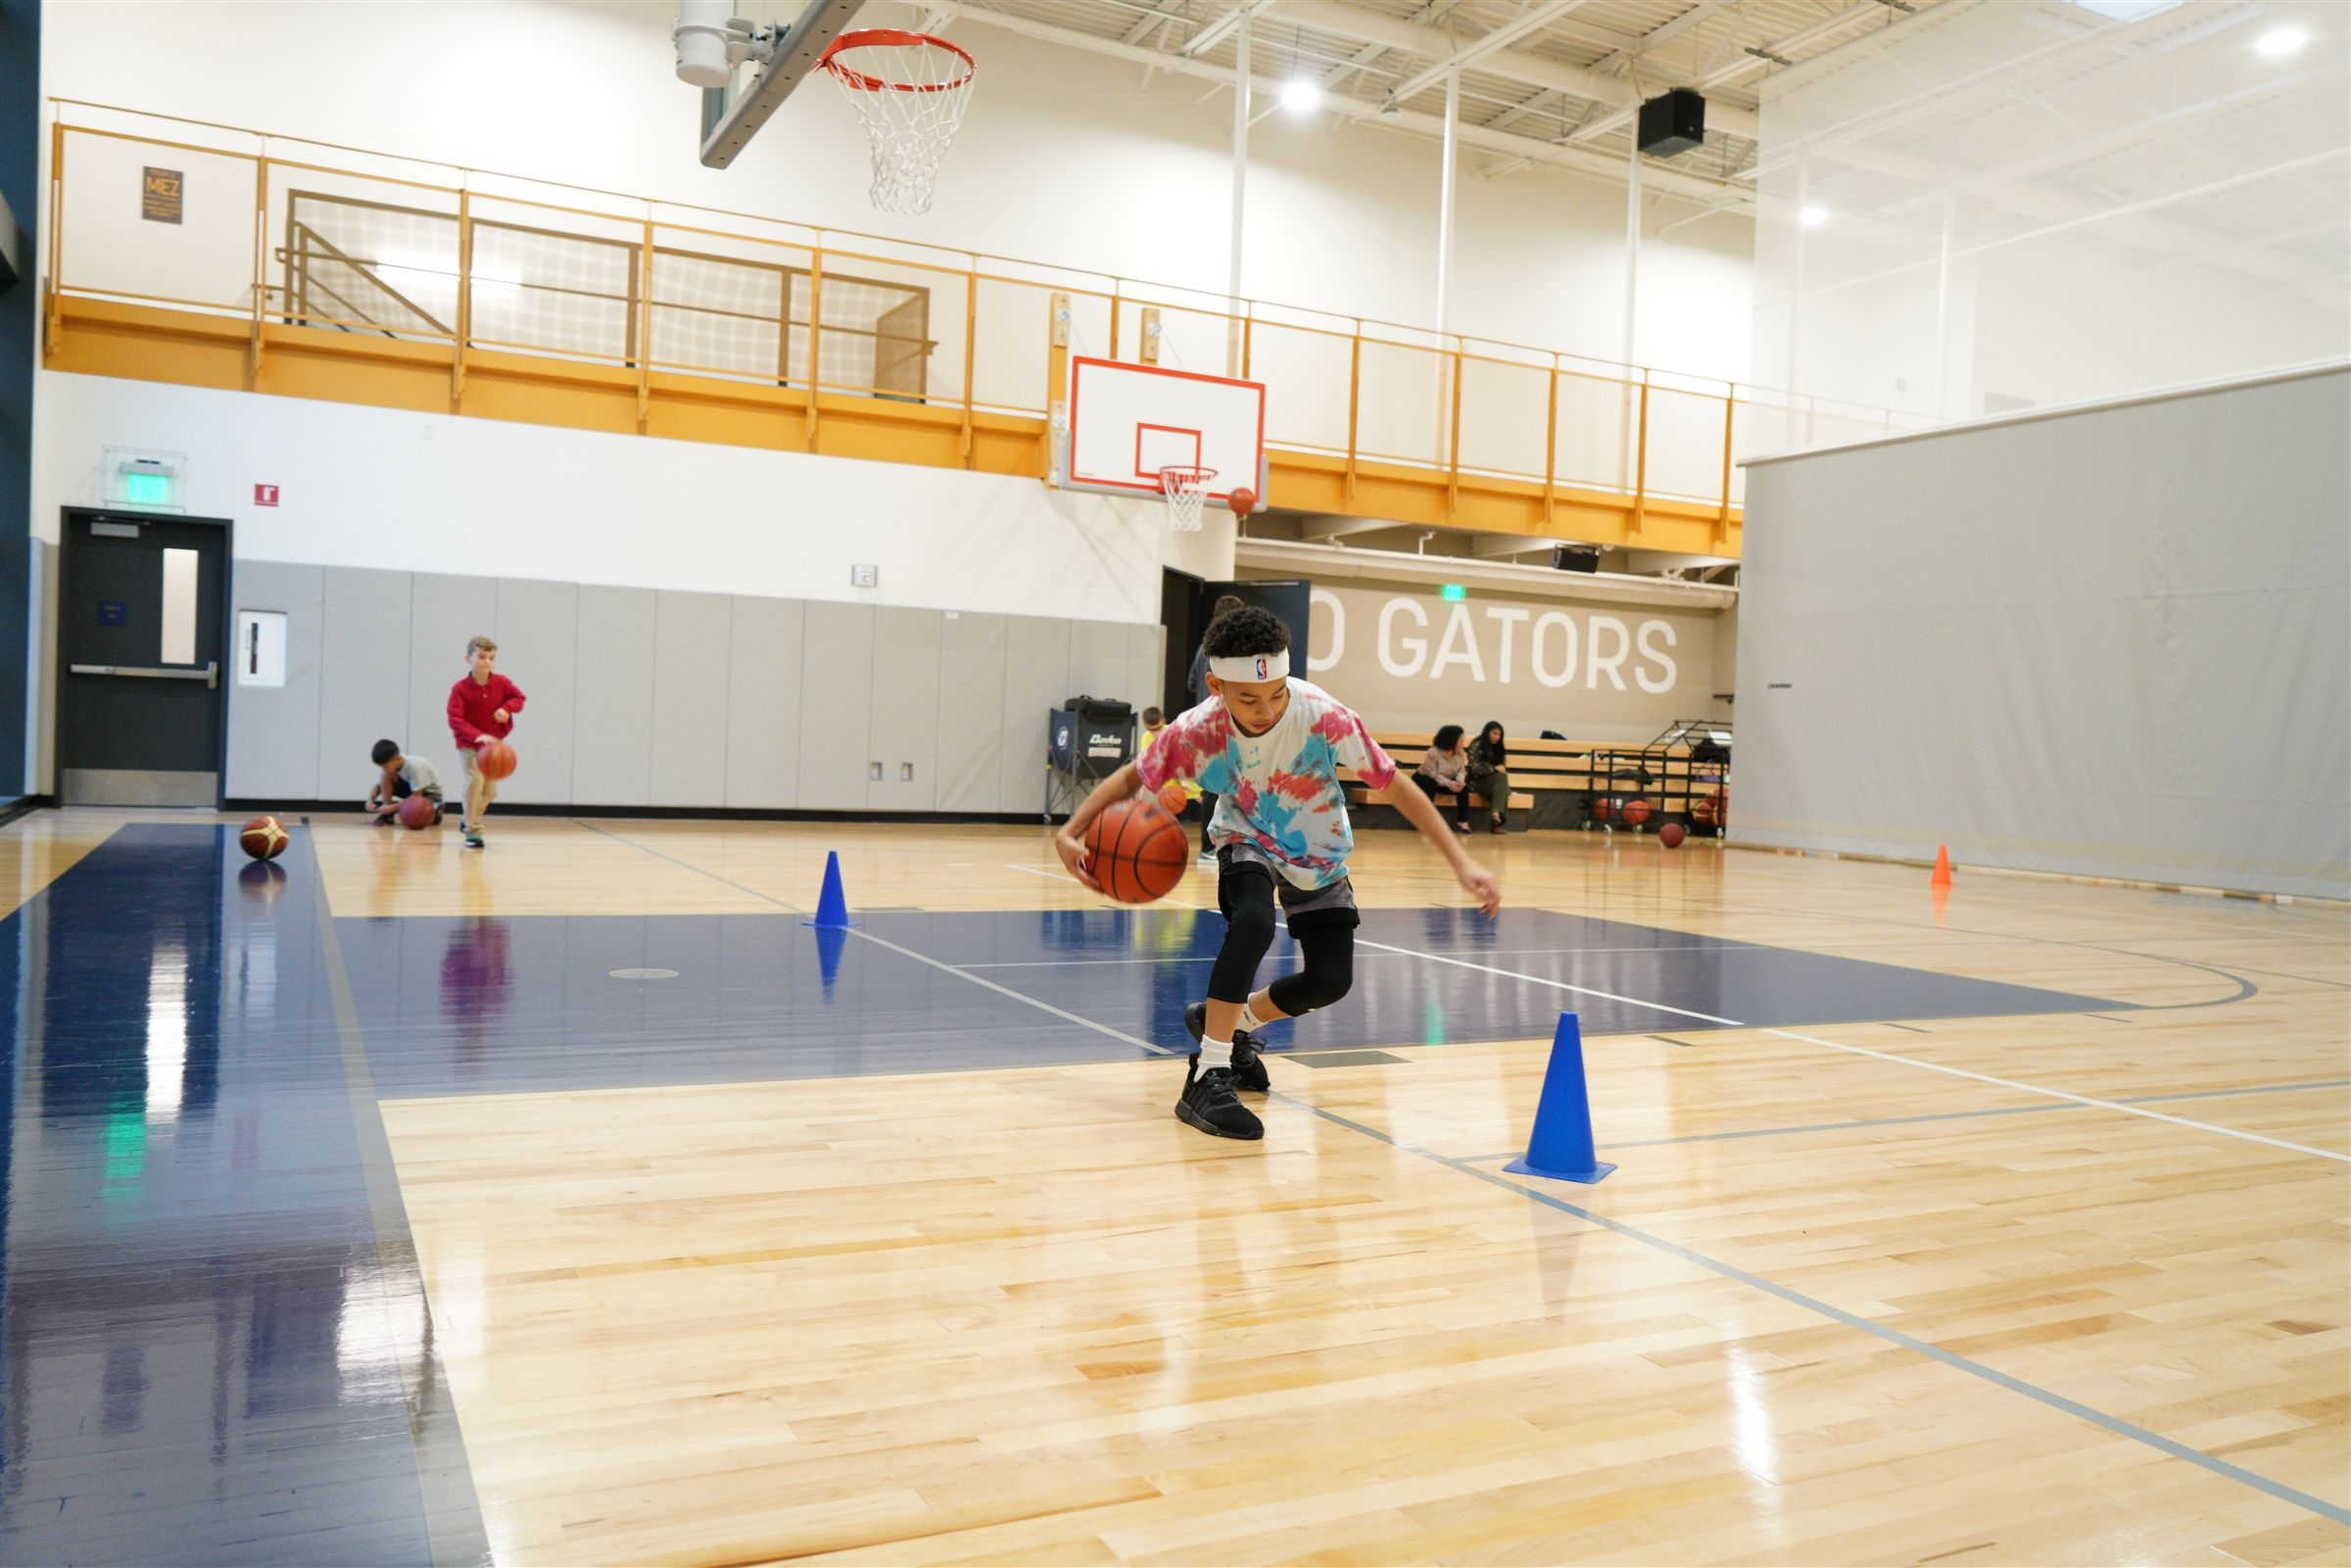 The new gym will host sports camps and provide space to play.